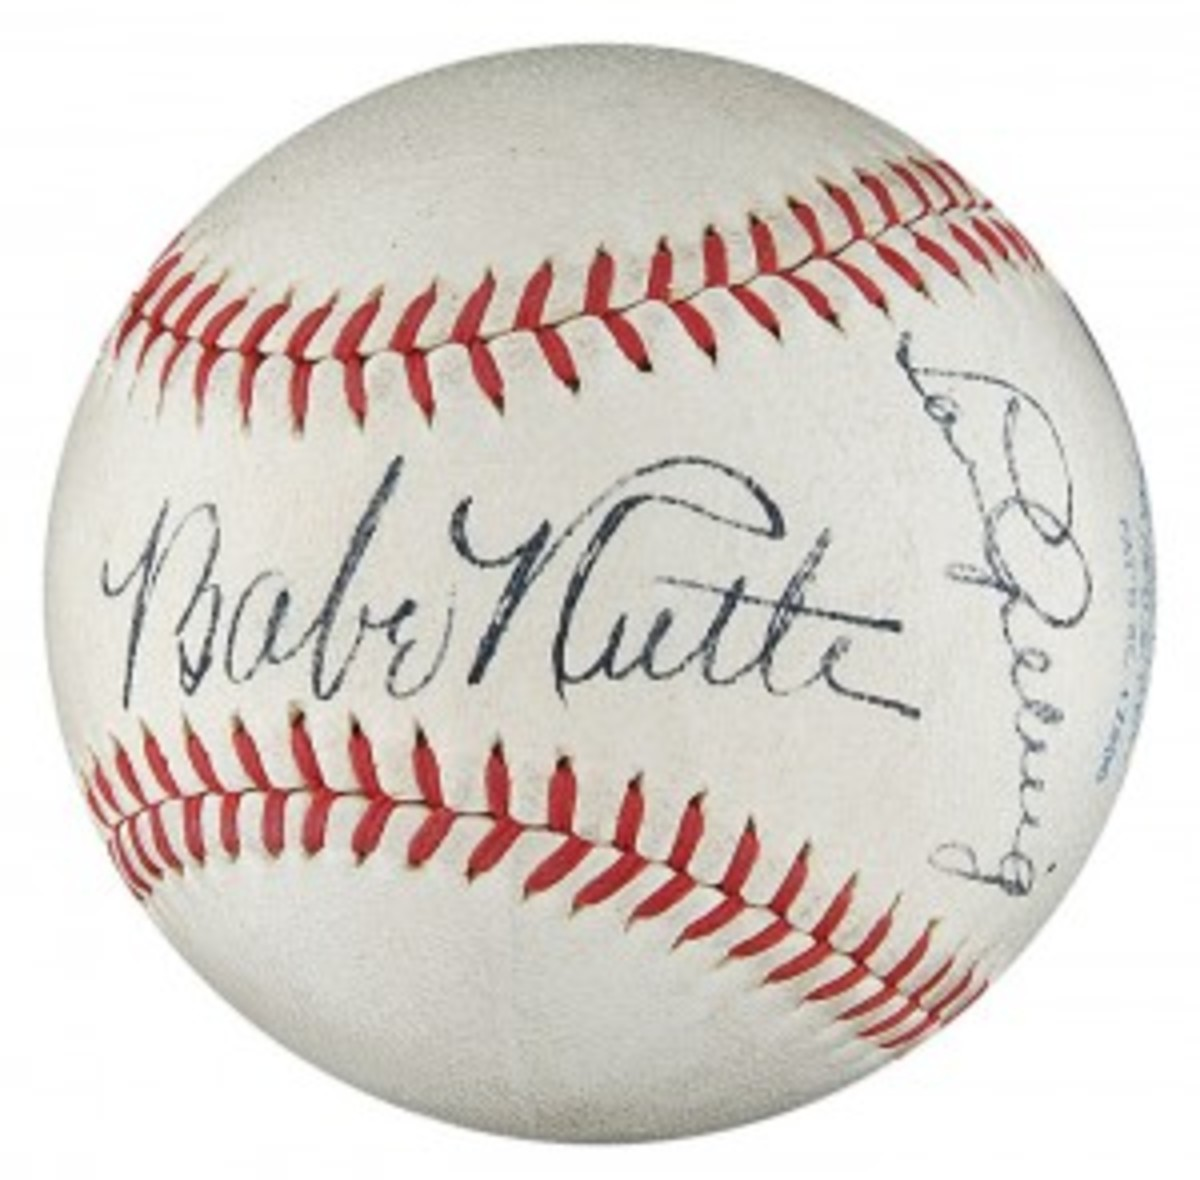 Extraordinary Babe Ruth and Lou Gehrig Signed Baseball - PSA/DNA NM-MT+ 8.5 (res. $25,000; est. $50,000+) sold for an astounding record $343,650.